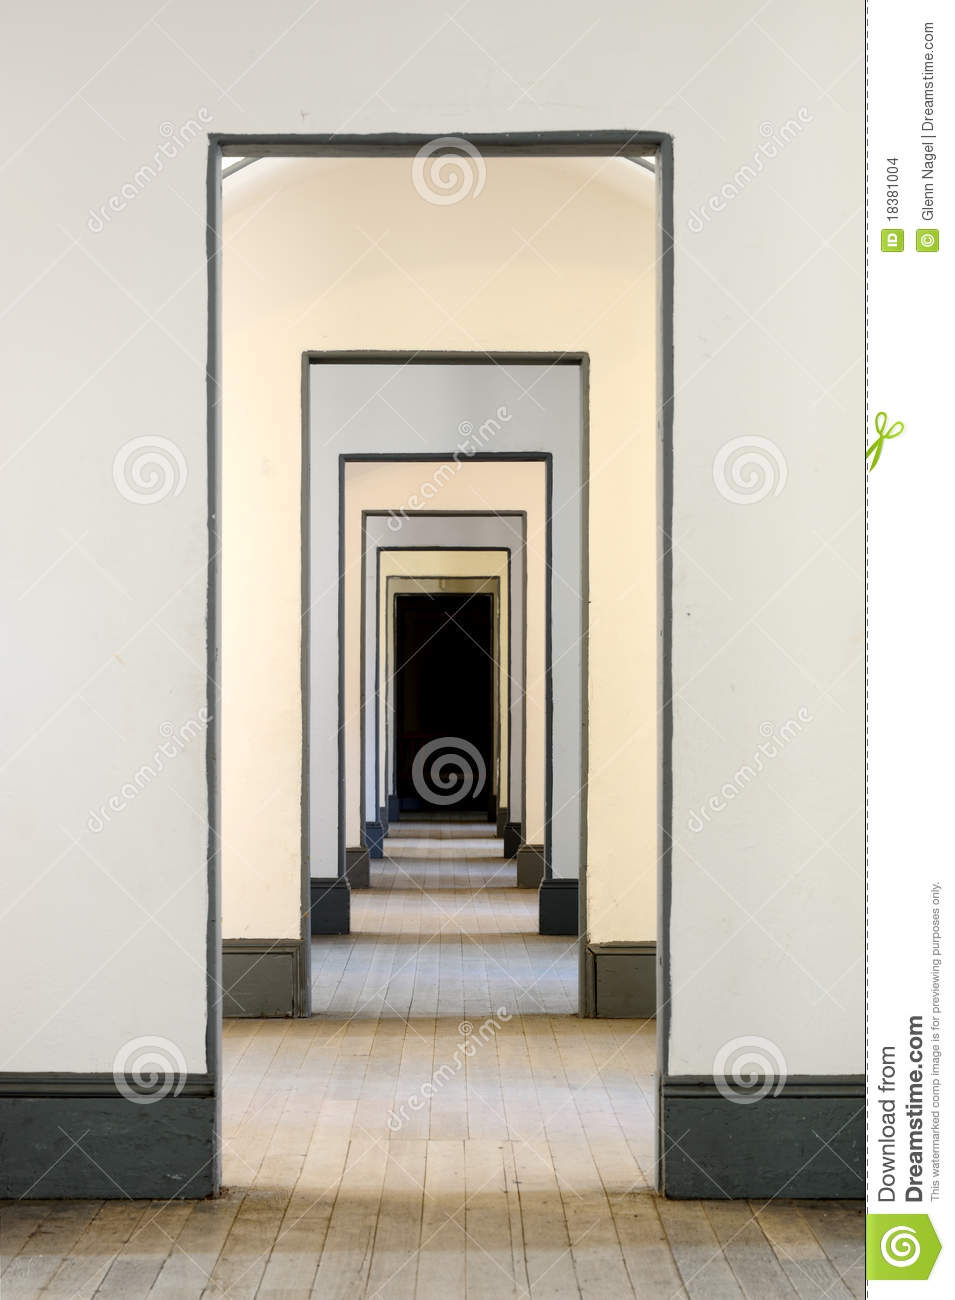 Royalty-Free Stock Photo & Hall of many doors stock photo. Image of gray inside - 18381004